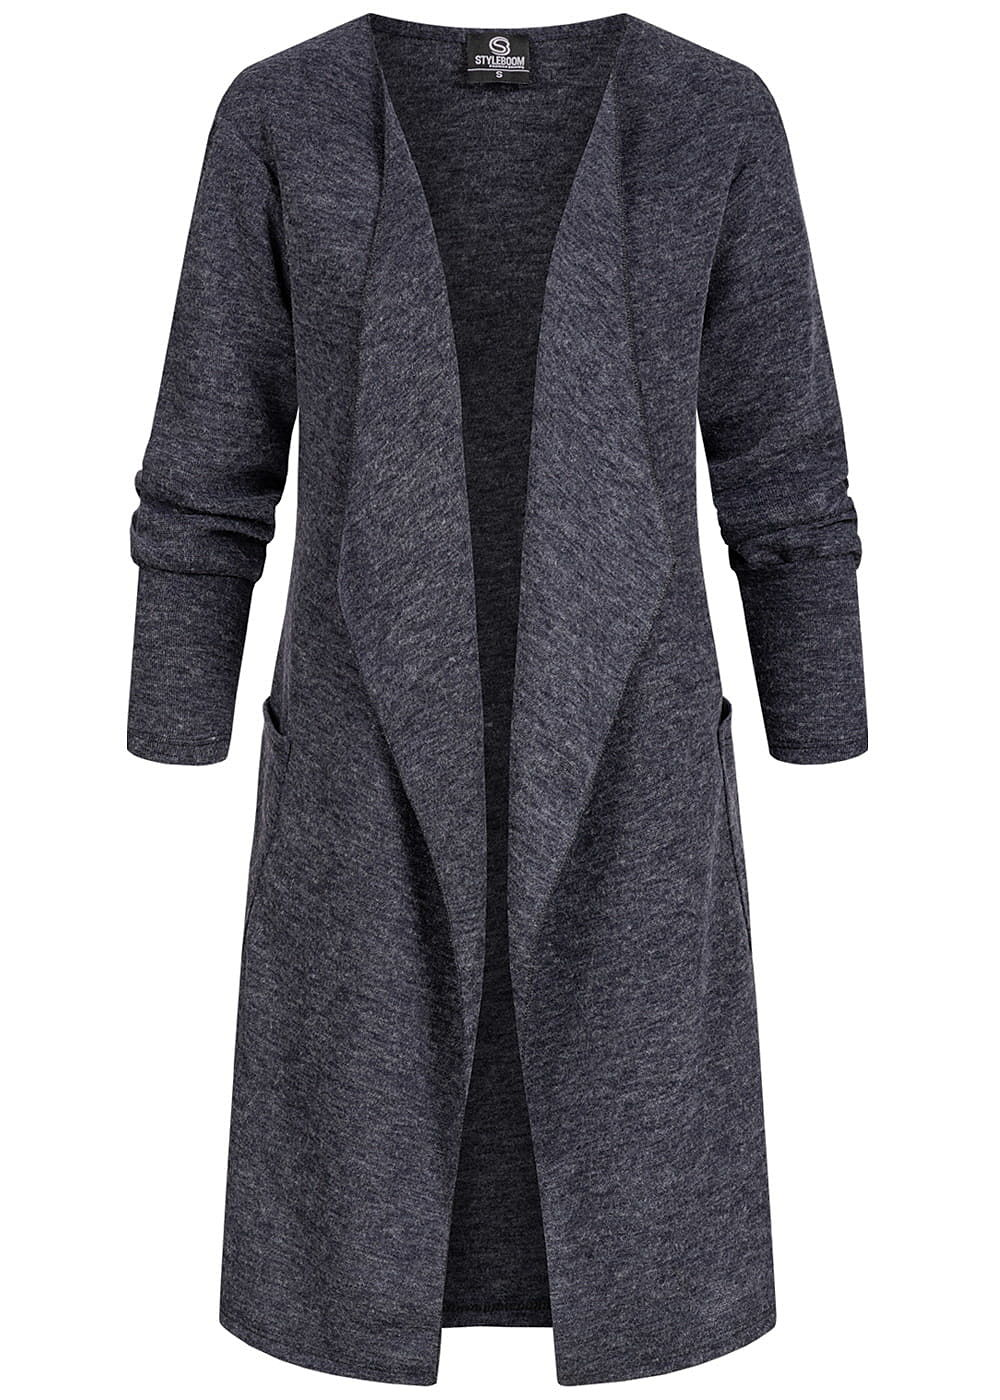 Styleboom Fashion Damen Drapped Longform Cardigan 2-Pockets navy blau - Art.-Nr.: 20086351